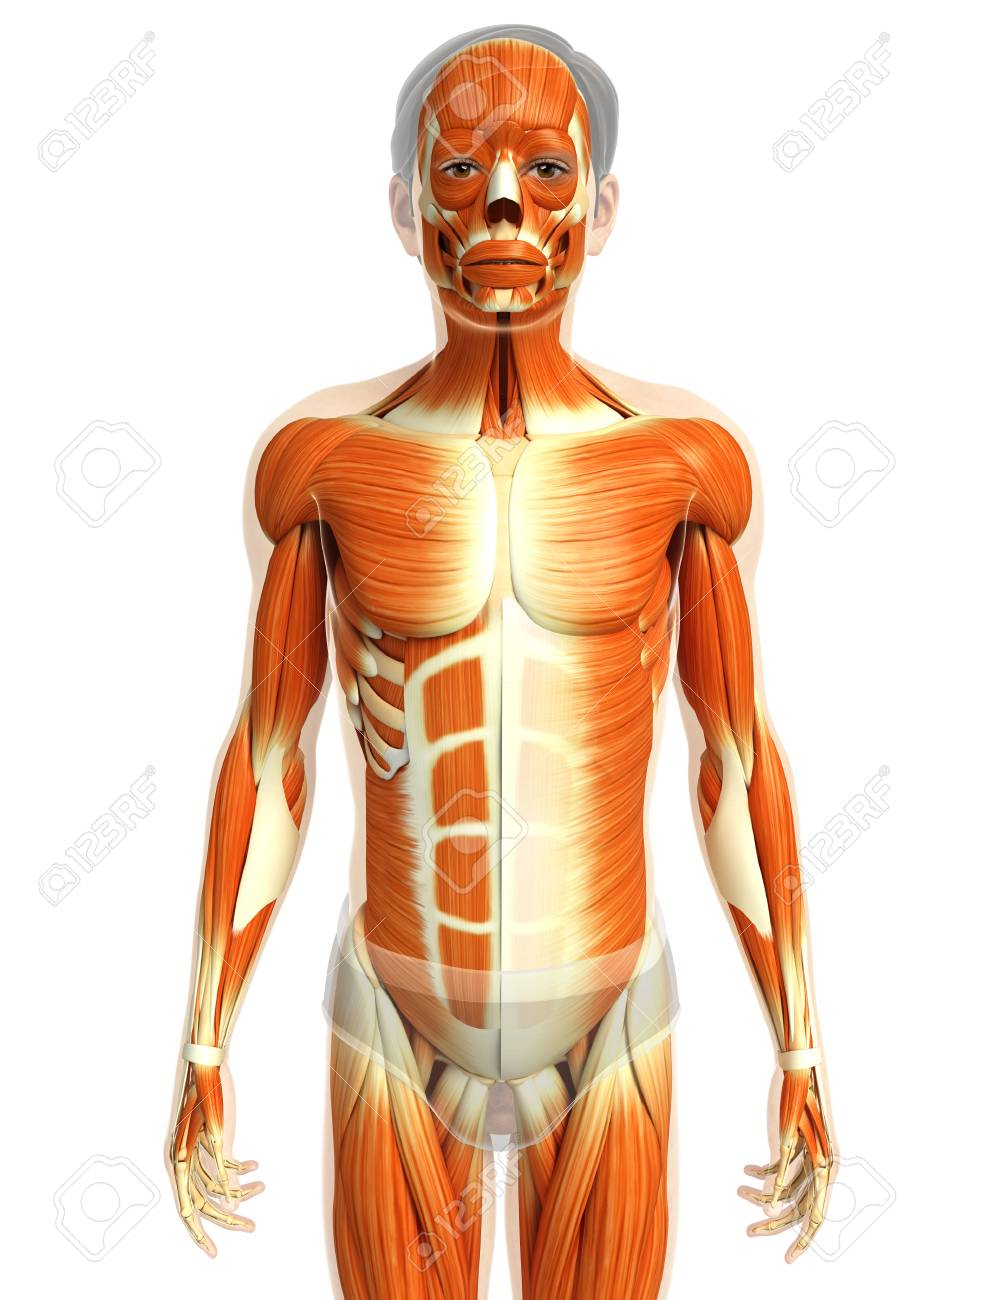 3d Rendered Illustration Of Male Muscles Anatomy Stock Photo